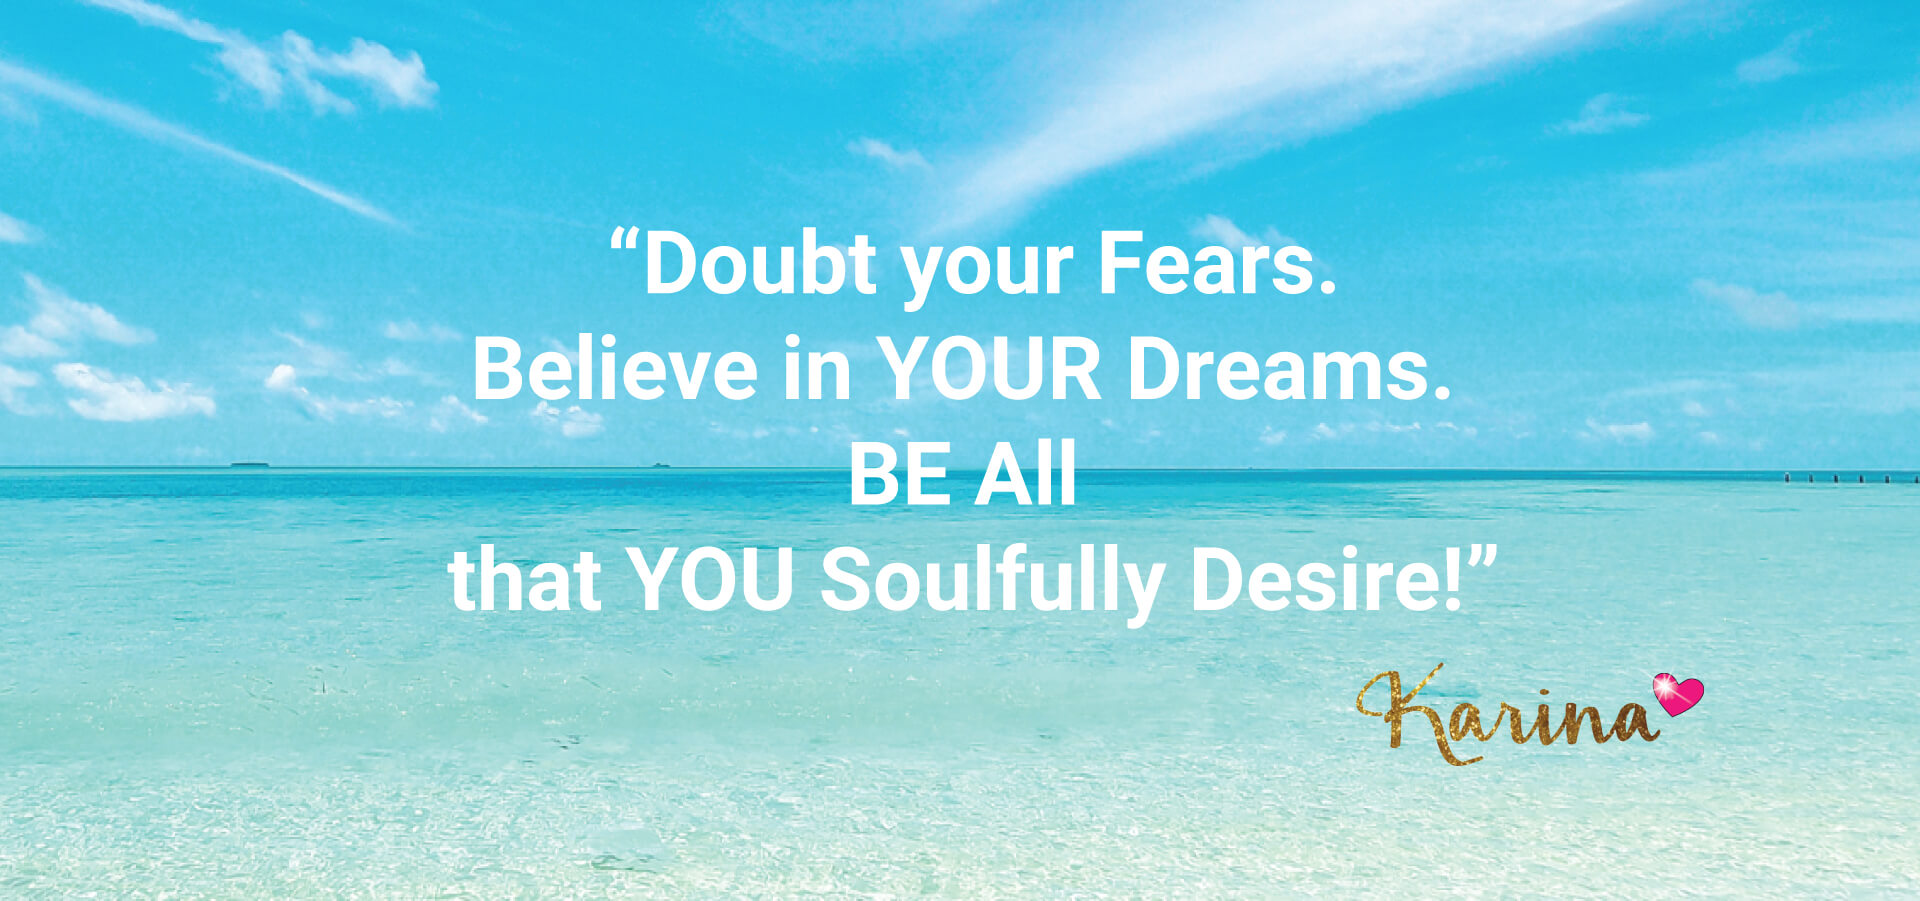 Doubt your fears believe in your dreams be all that you soulfully desire - Karina Ismail